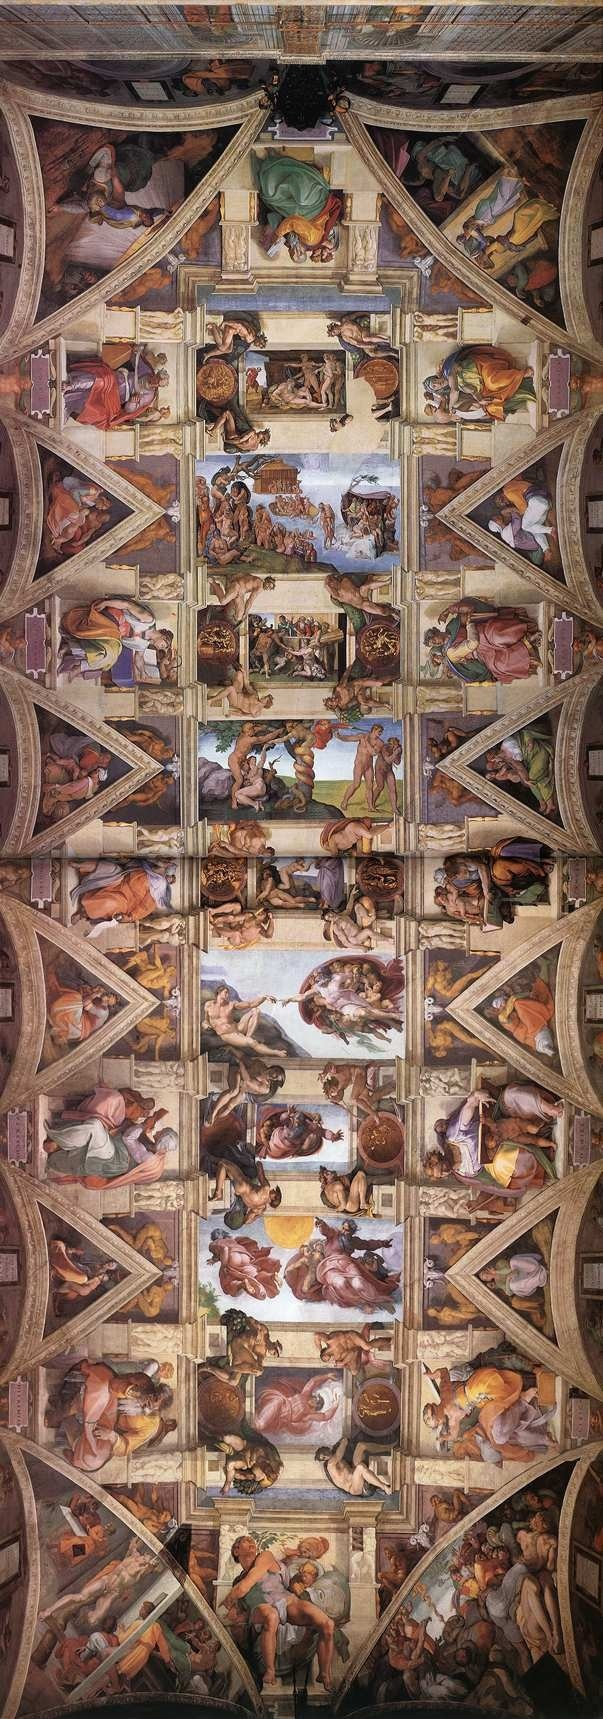 The Sistine Chapel ceiling. Source: Web Gallery of Art.